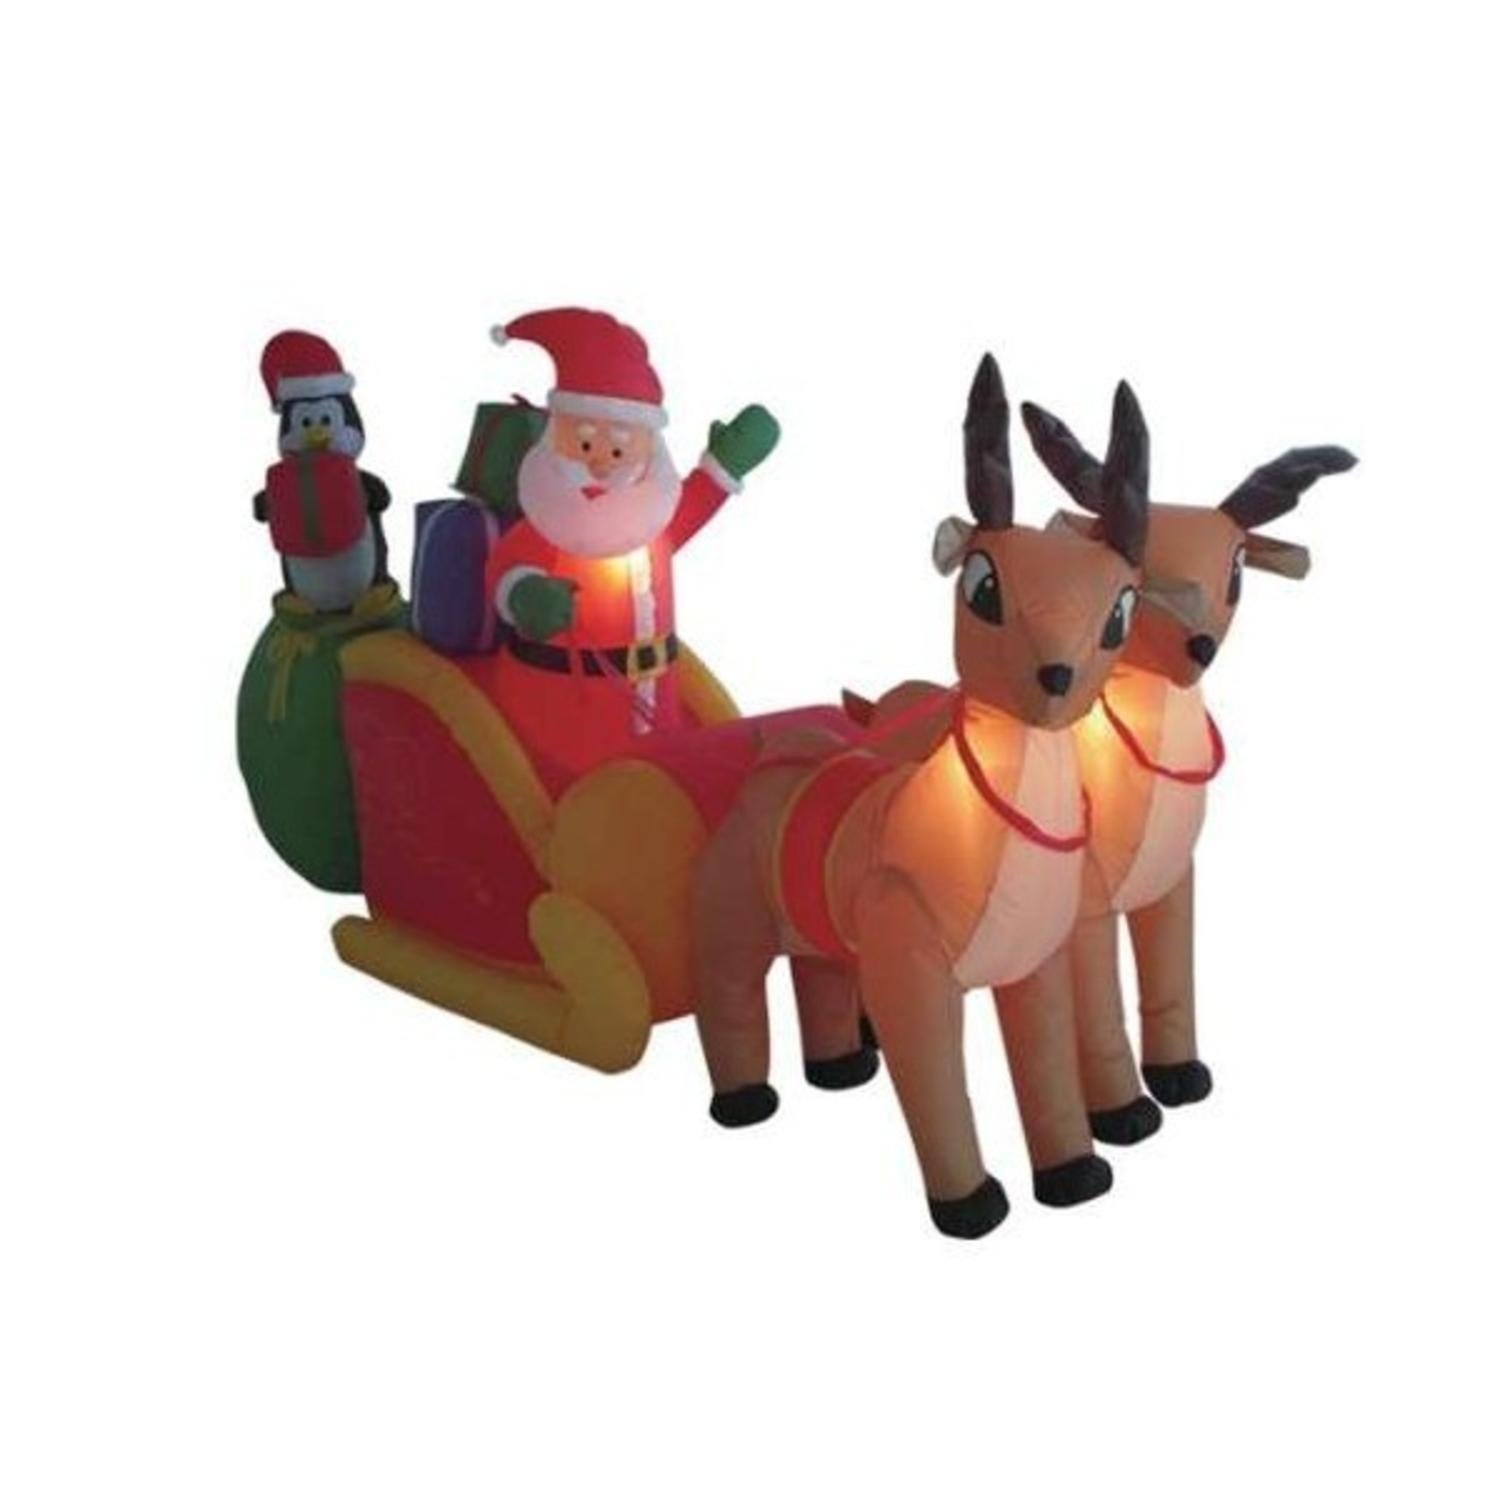 Amazon.com : 8.5u0027 Airblown Inflatable Santa On Sleigh W/Reindeer Lighted  Christmas Yard Decor : Yard Art : Garden U0026 Outdoor